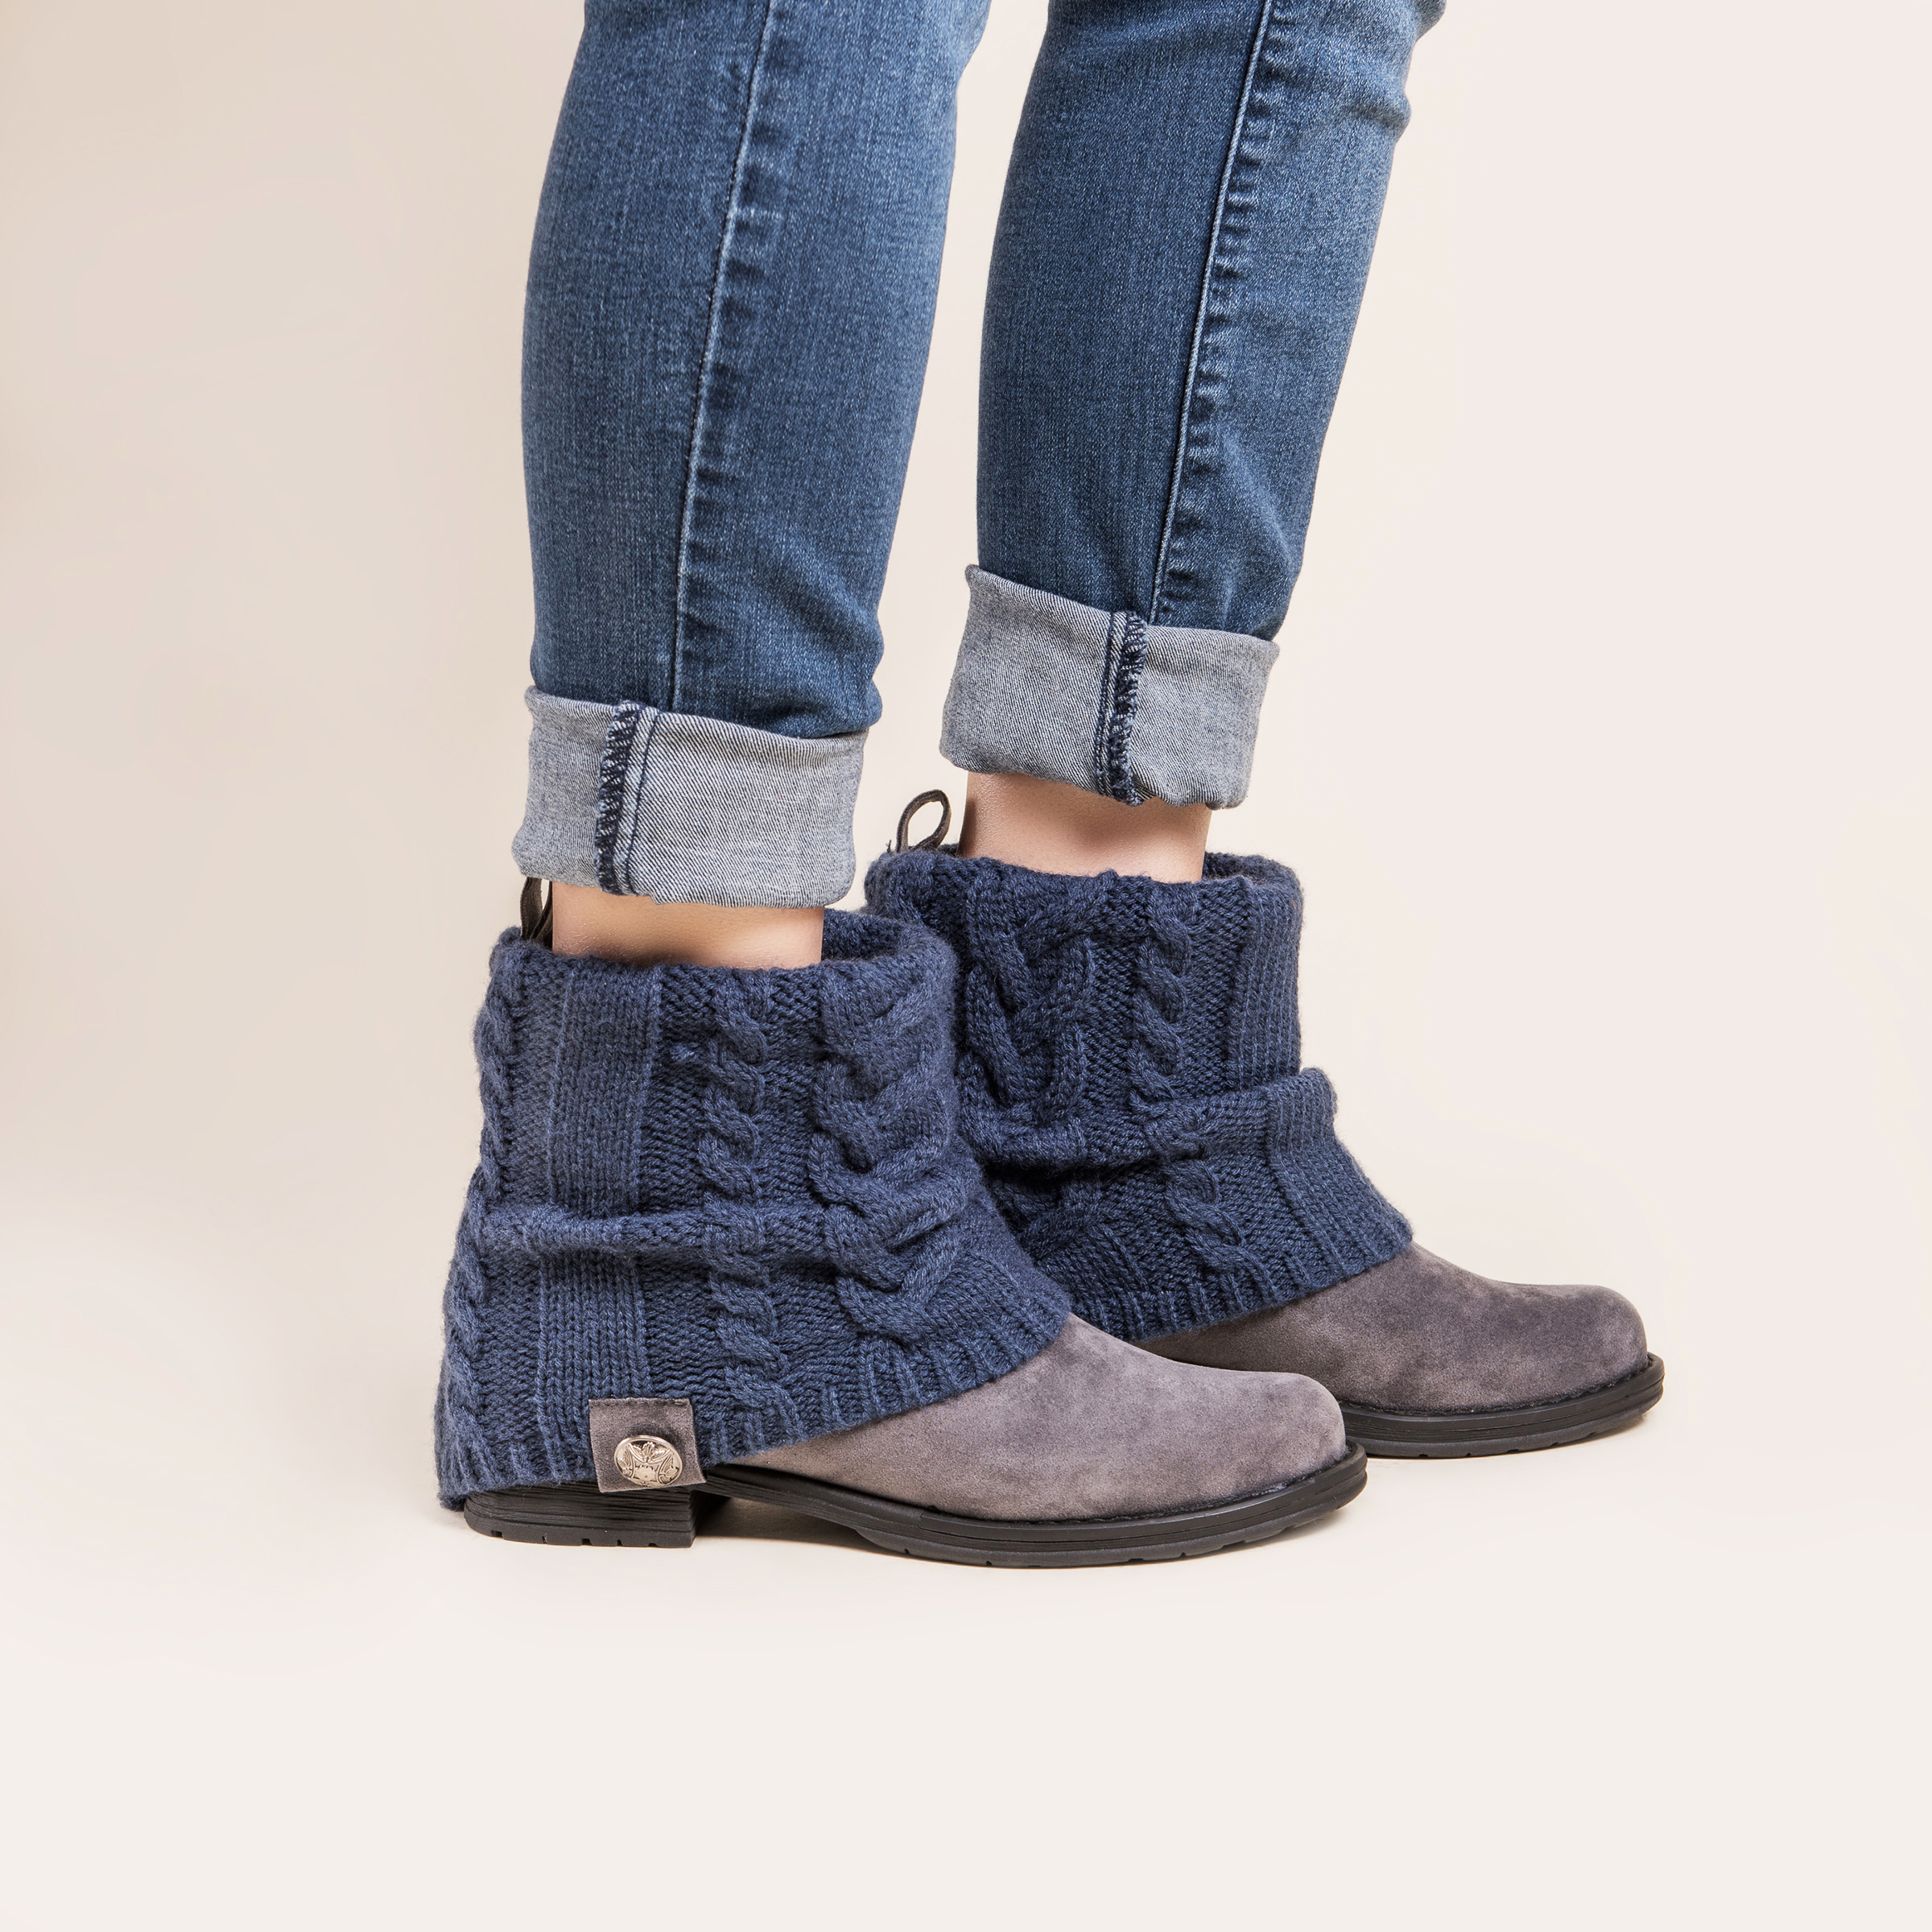 MUK LUKS Women's Cass Boots Economical, stylish, and eye-catching shoes